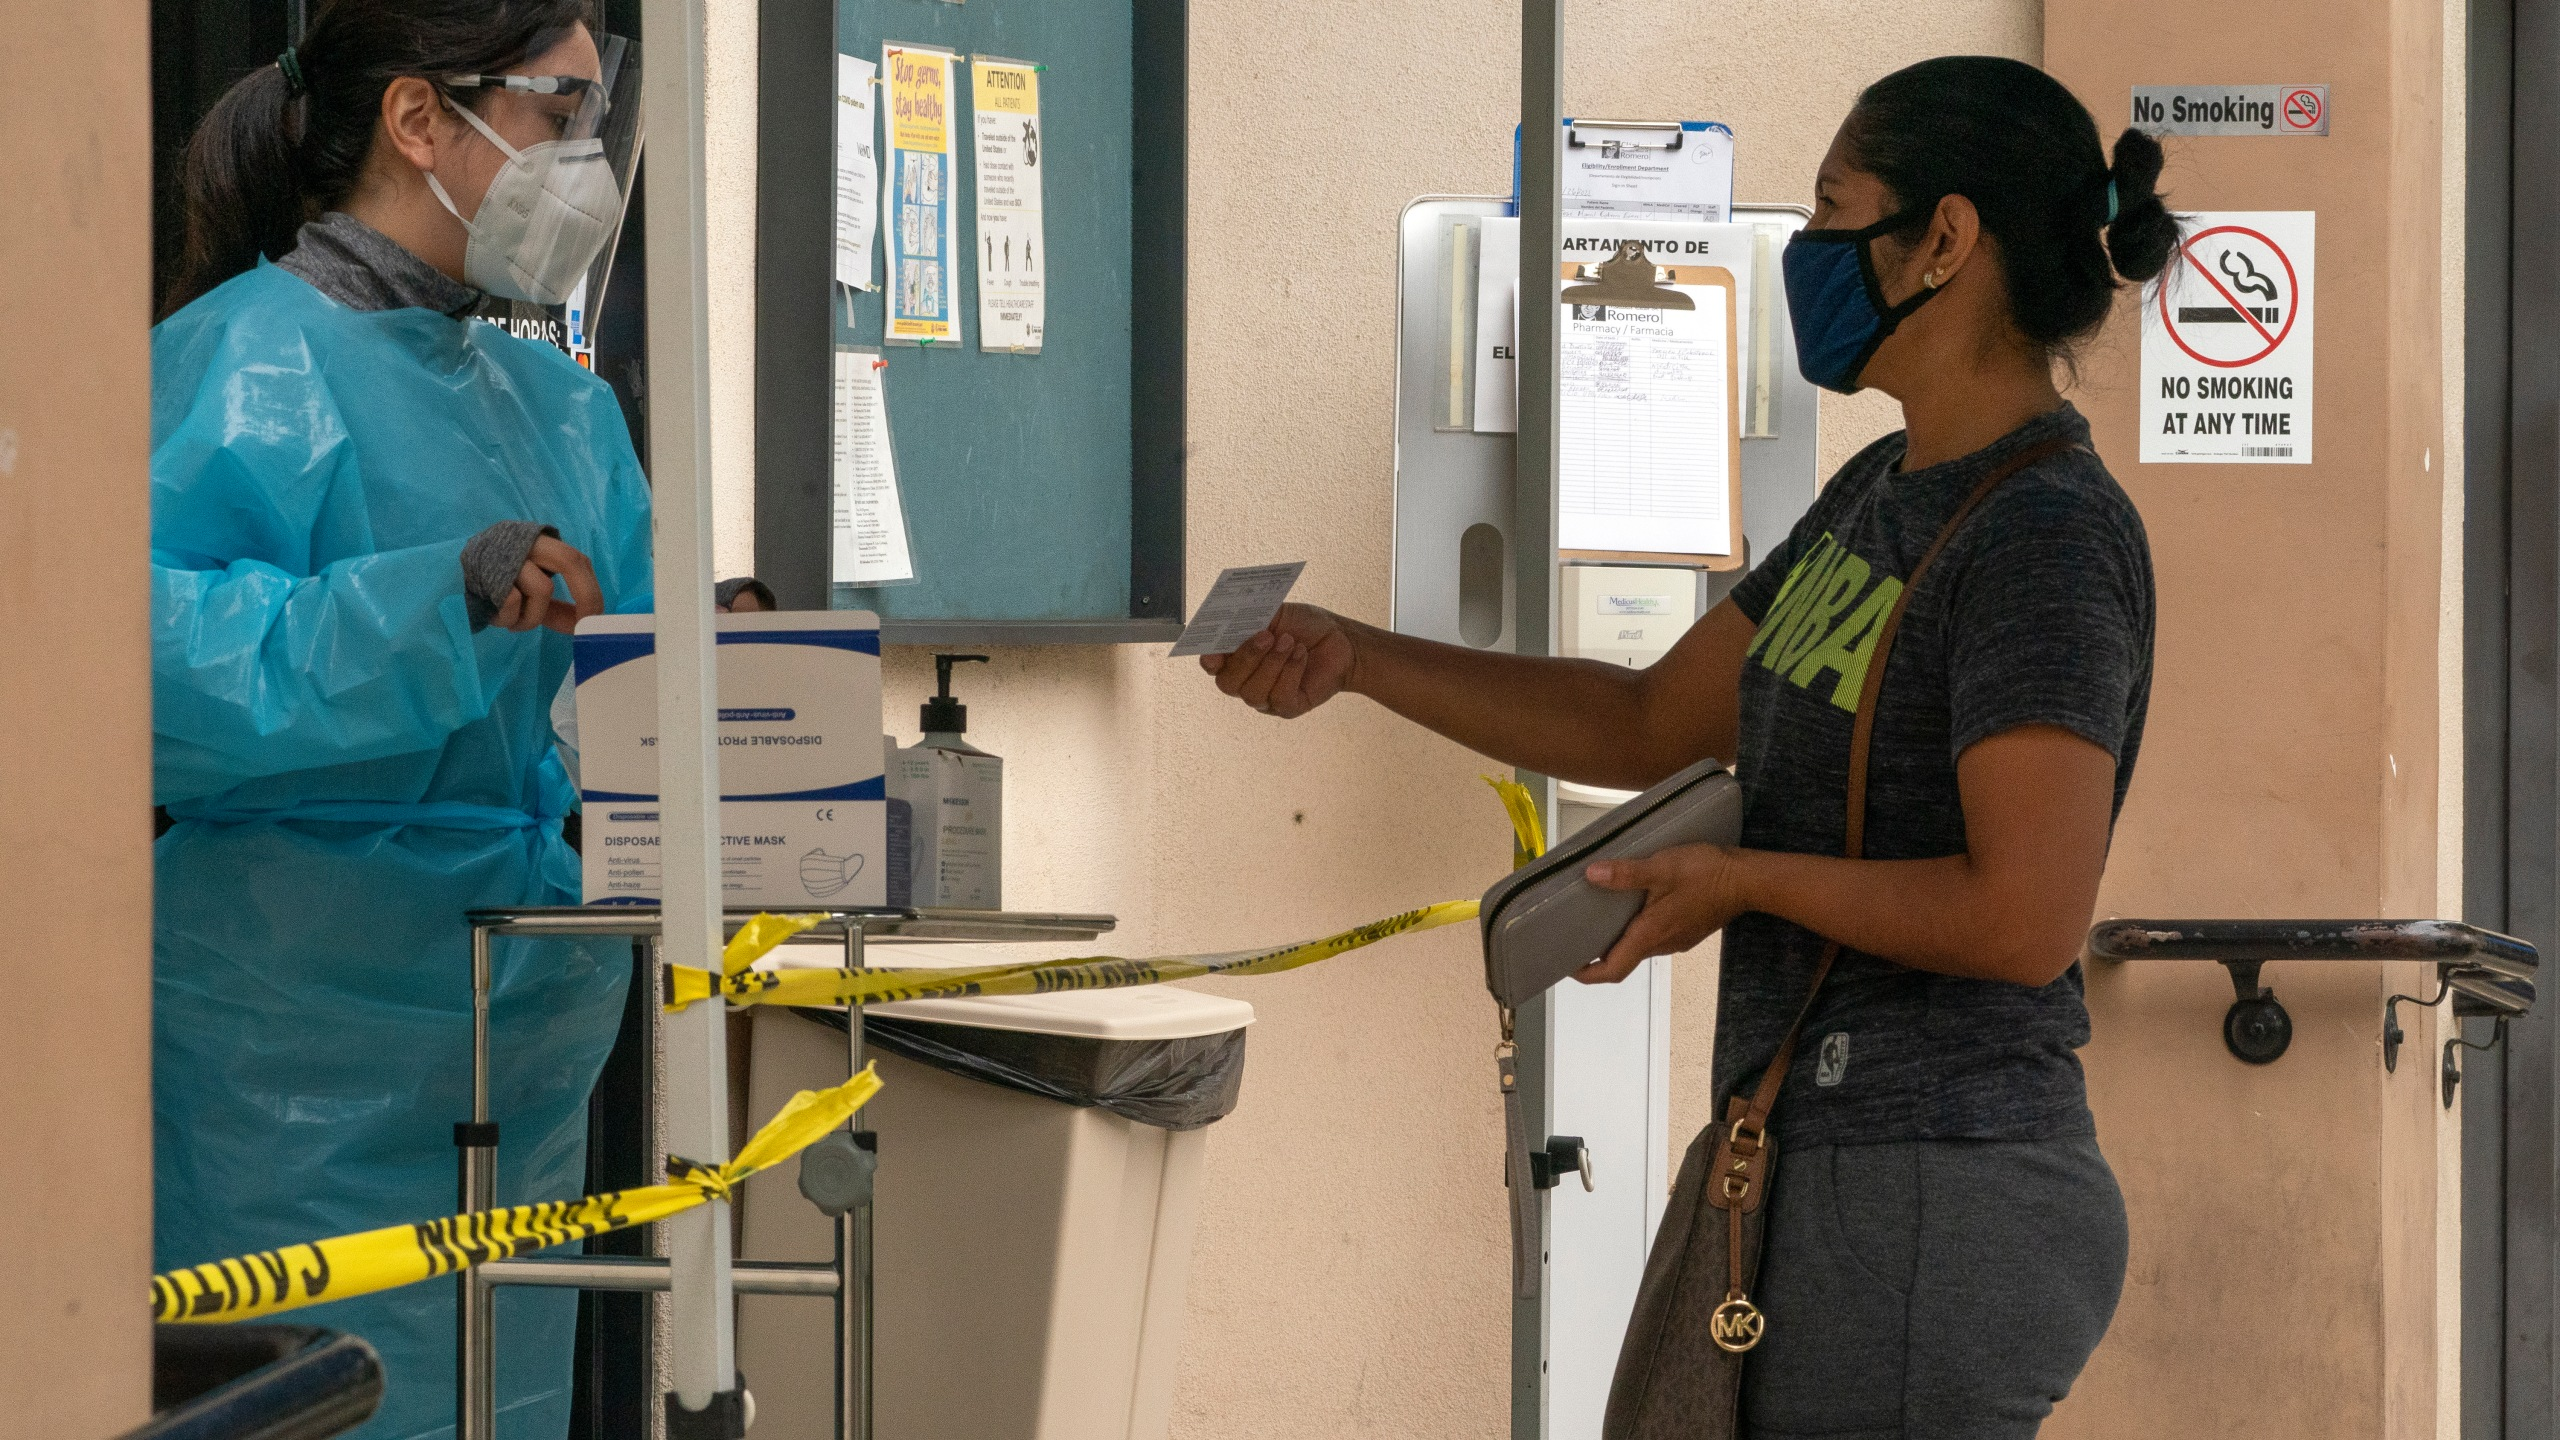 In this July 26, 2021, file photo, a patient shows her COVID-19 vaccine card at the Clínica Monseñor Oscar A. Romero in the Pico-Union district of Los Angeles. (Damian Dovarganes/Associated Press)